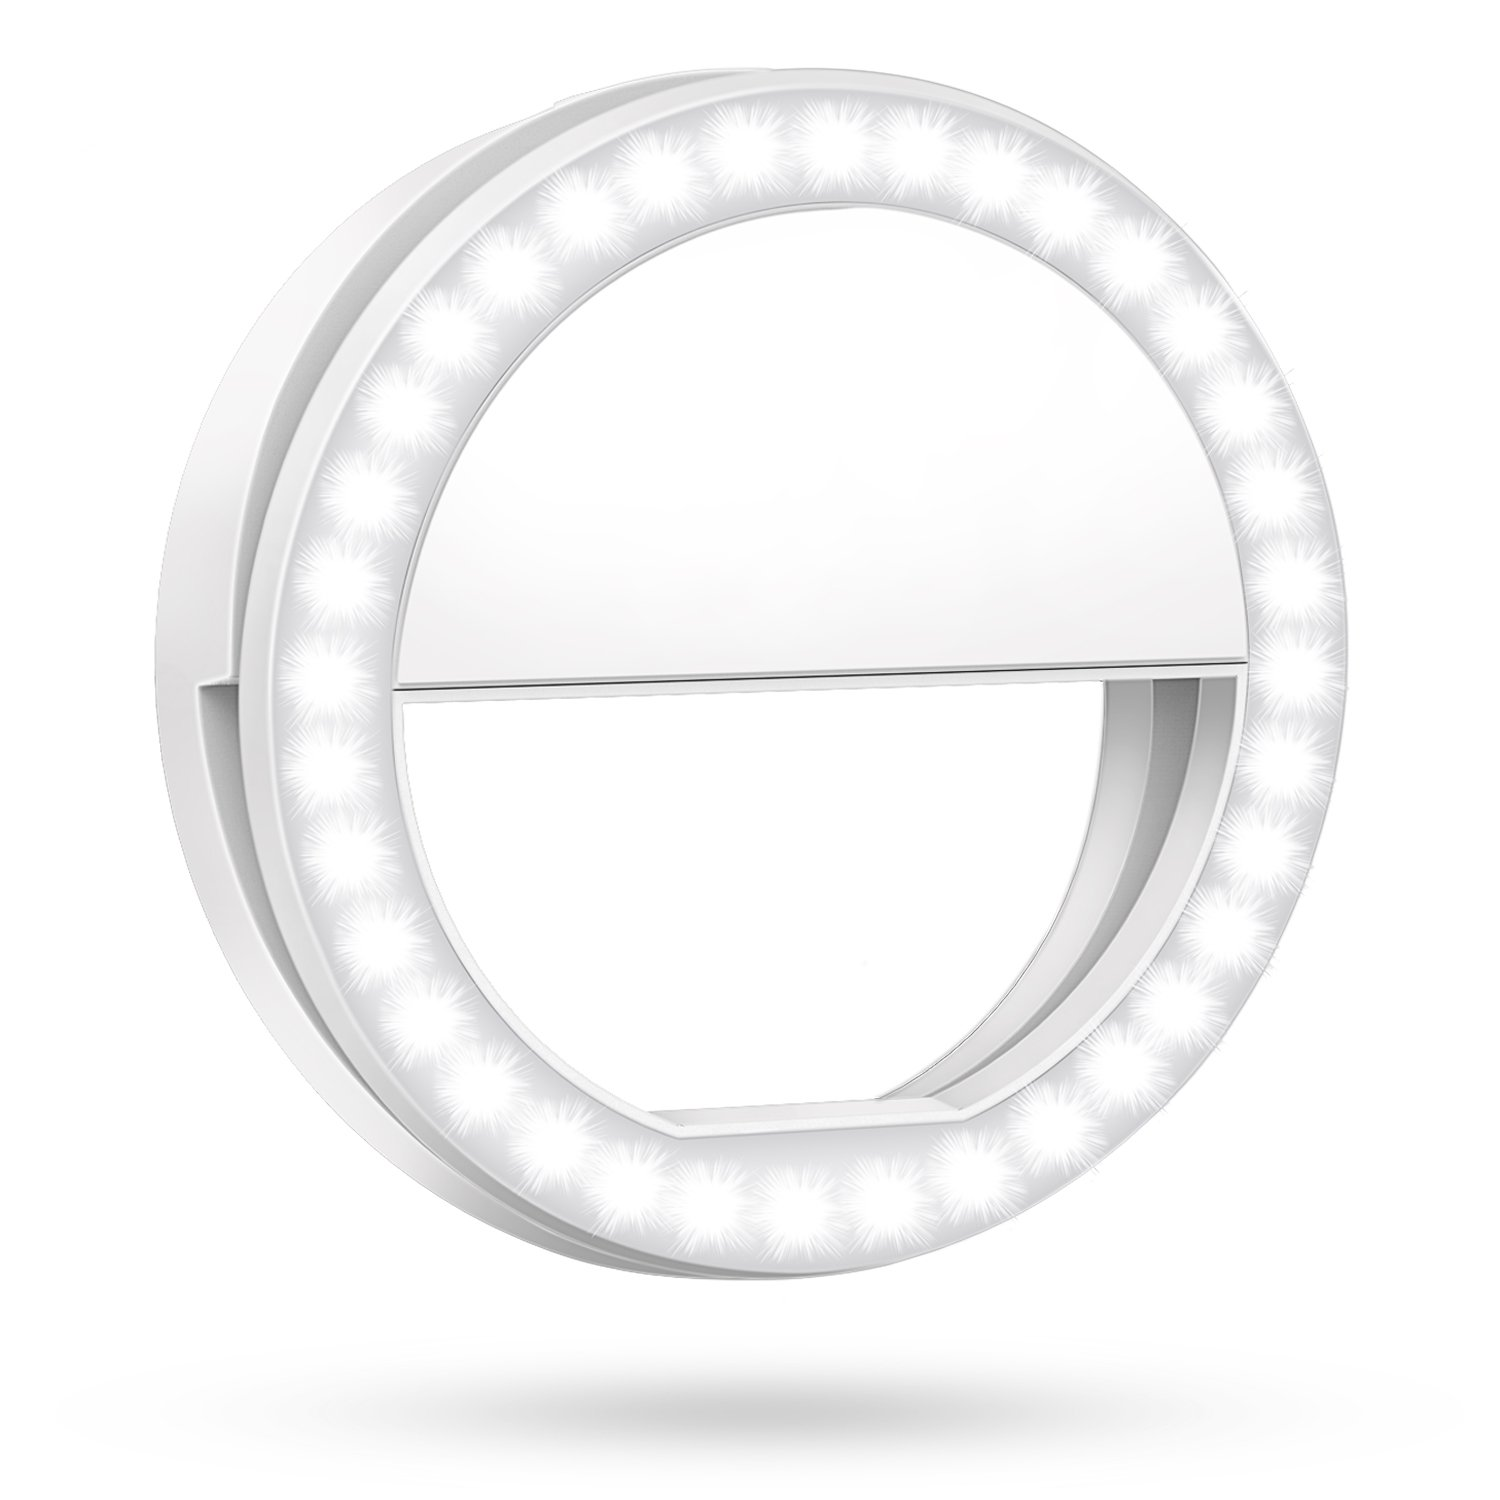 Meifigno Selfie Phone Camera Ring Light with [Rechargable] 36 LED Light, 3-Level Adjustable Brightness On-Camera Video Lights Clips On Night Makeup Light for iPhone Sumsung Galaxy Photography (White)